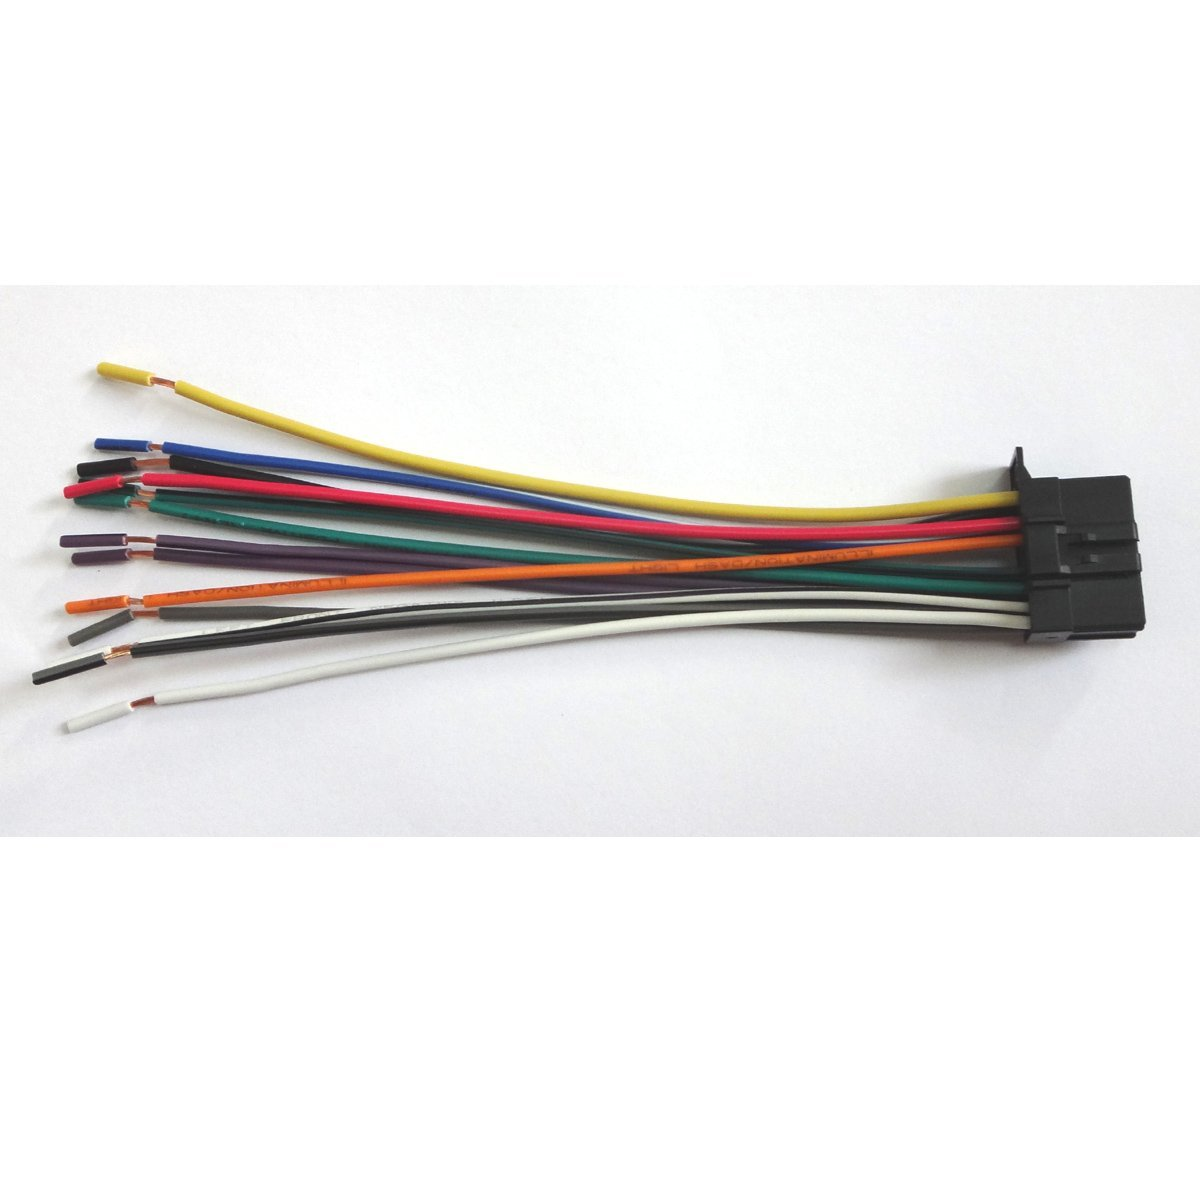 Buy Best Kits Bhpio16c Pioneer 16 Pin Radio Wire Harness In Cheap Wiring For New 16pin Into Car Audio Accessories Deh 7300bt 73bt